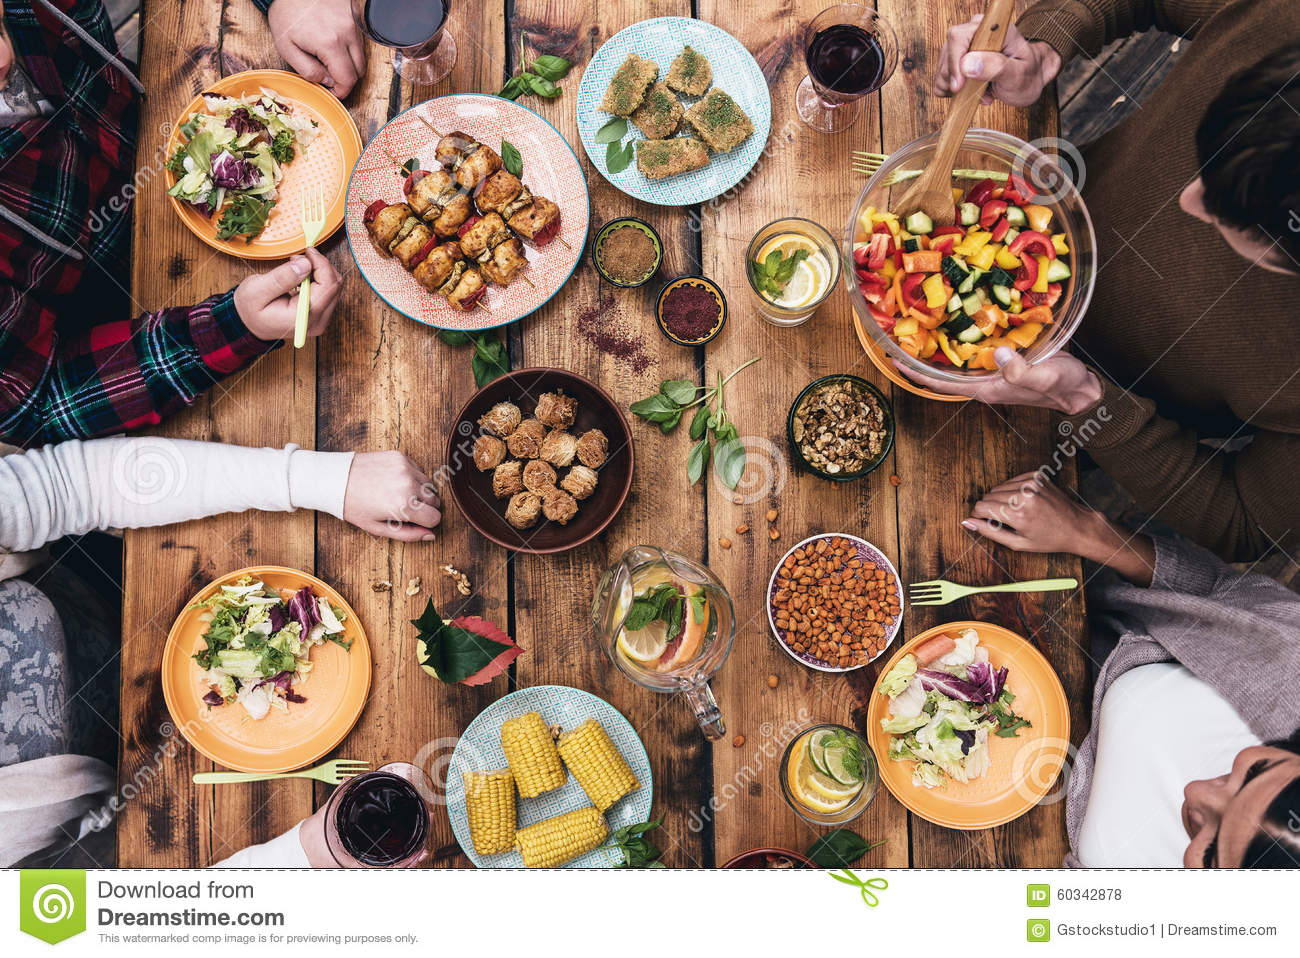 Enjoying Dinner Together Stock Photo Image 60342878 : enjoying dinner together top view four people having sitting rustic wooden table 60342878 from www.dreamstime.com size 1300 x 958 jpeg 292kB